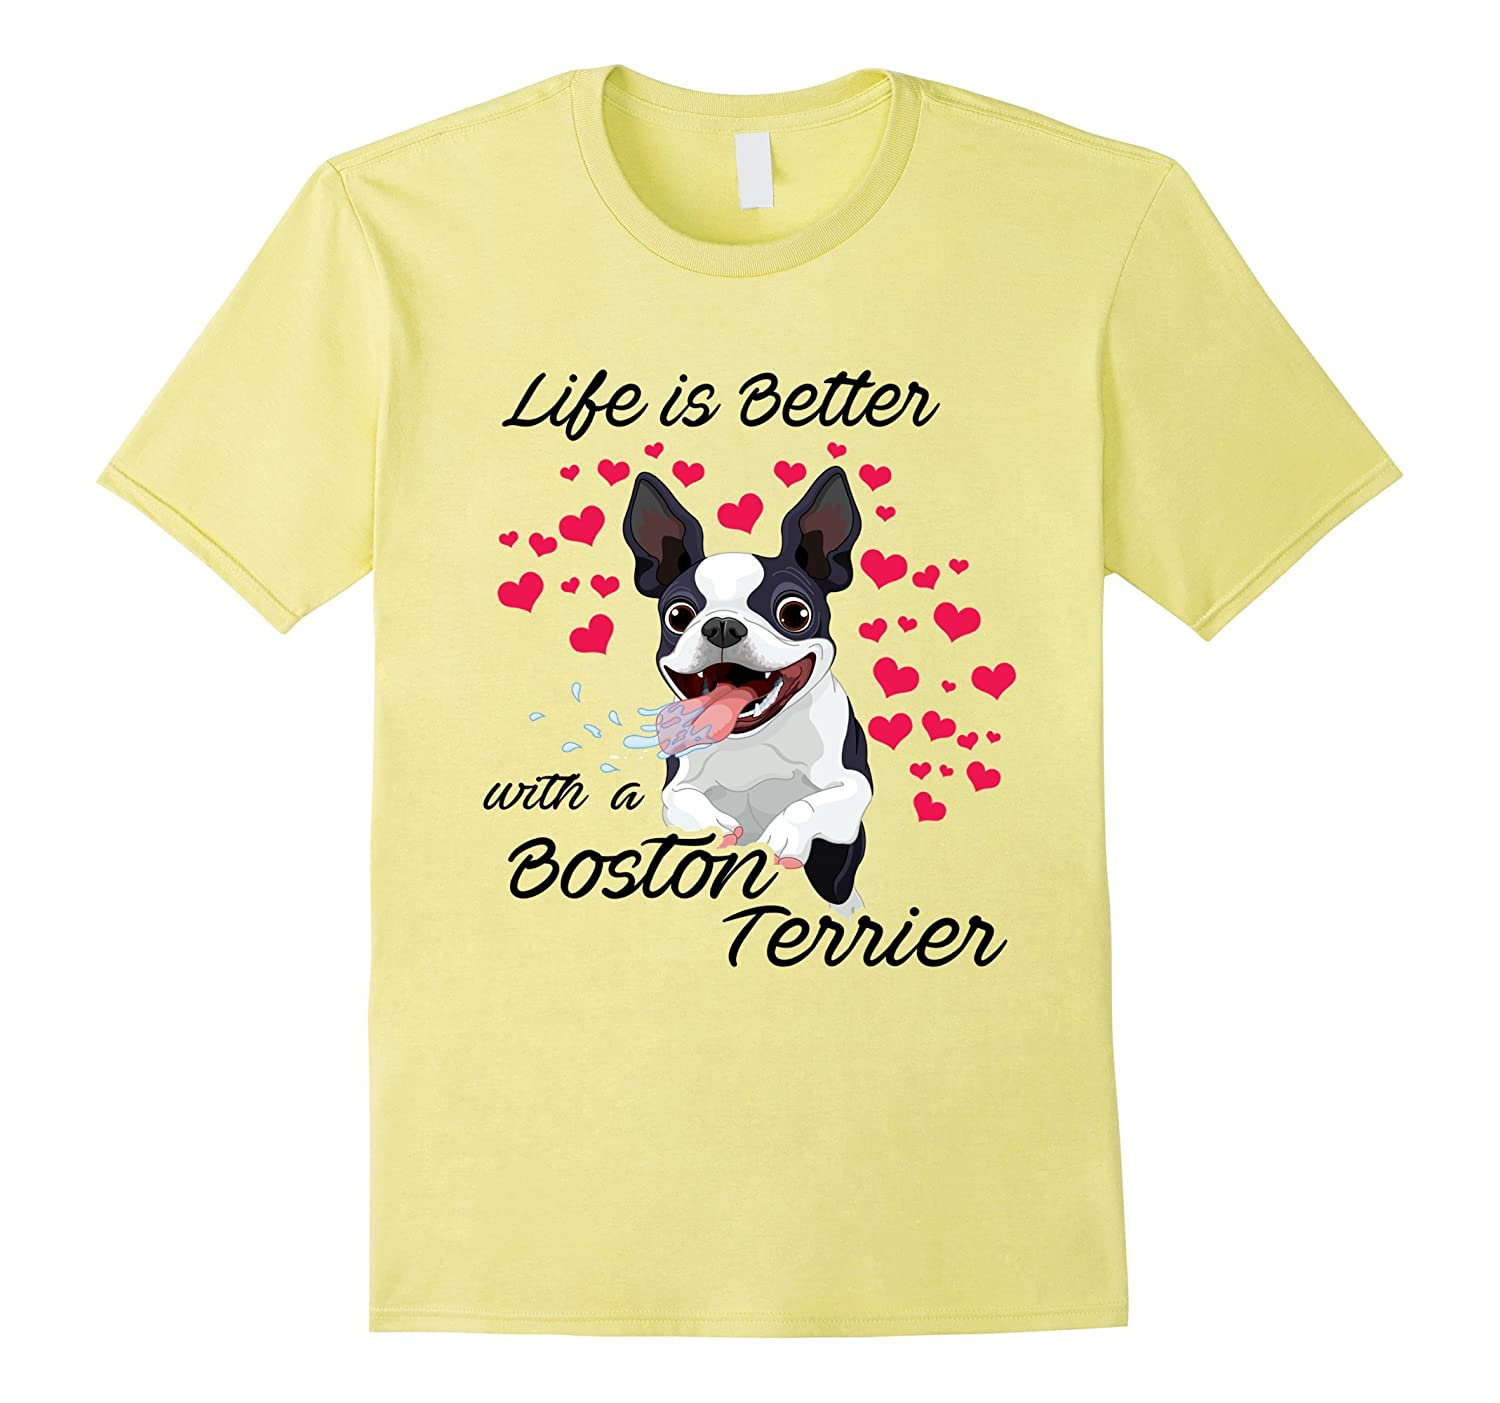 3400c70e4 Life's better with a Boston terrier Funny Dog Lovers T-Shirt-CL ...